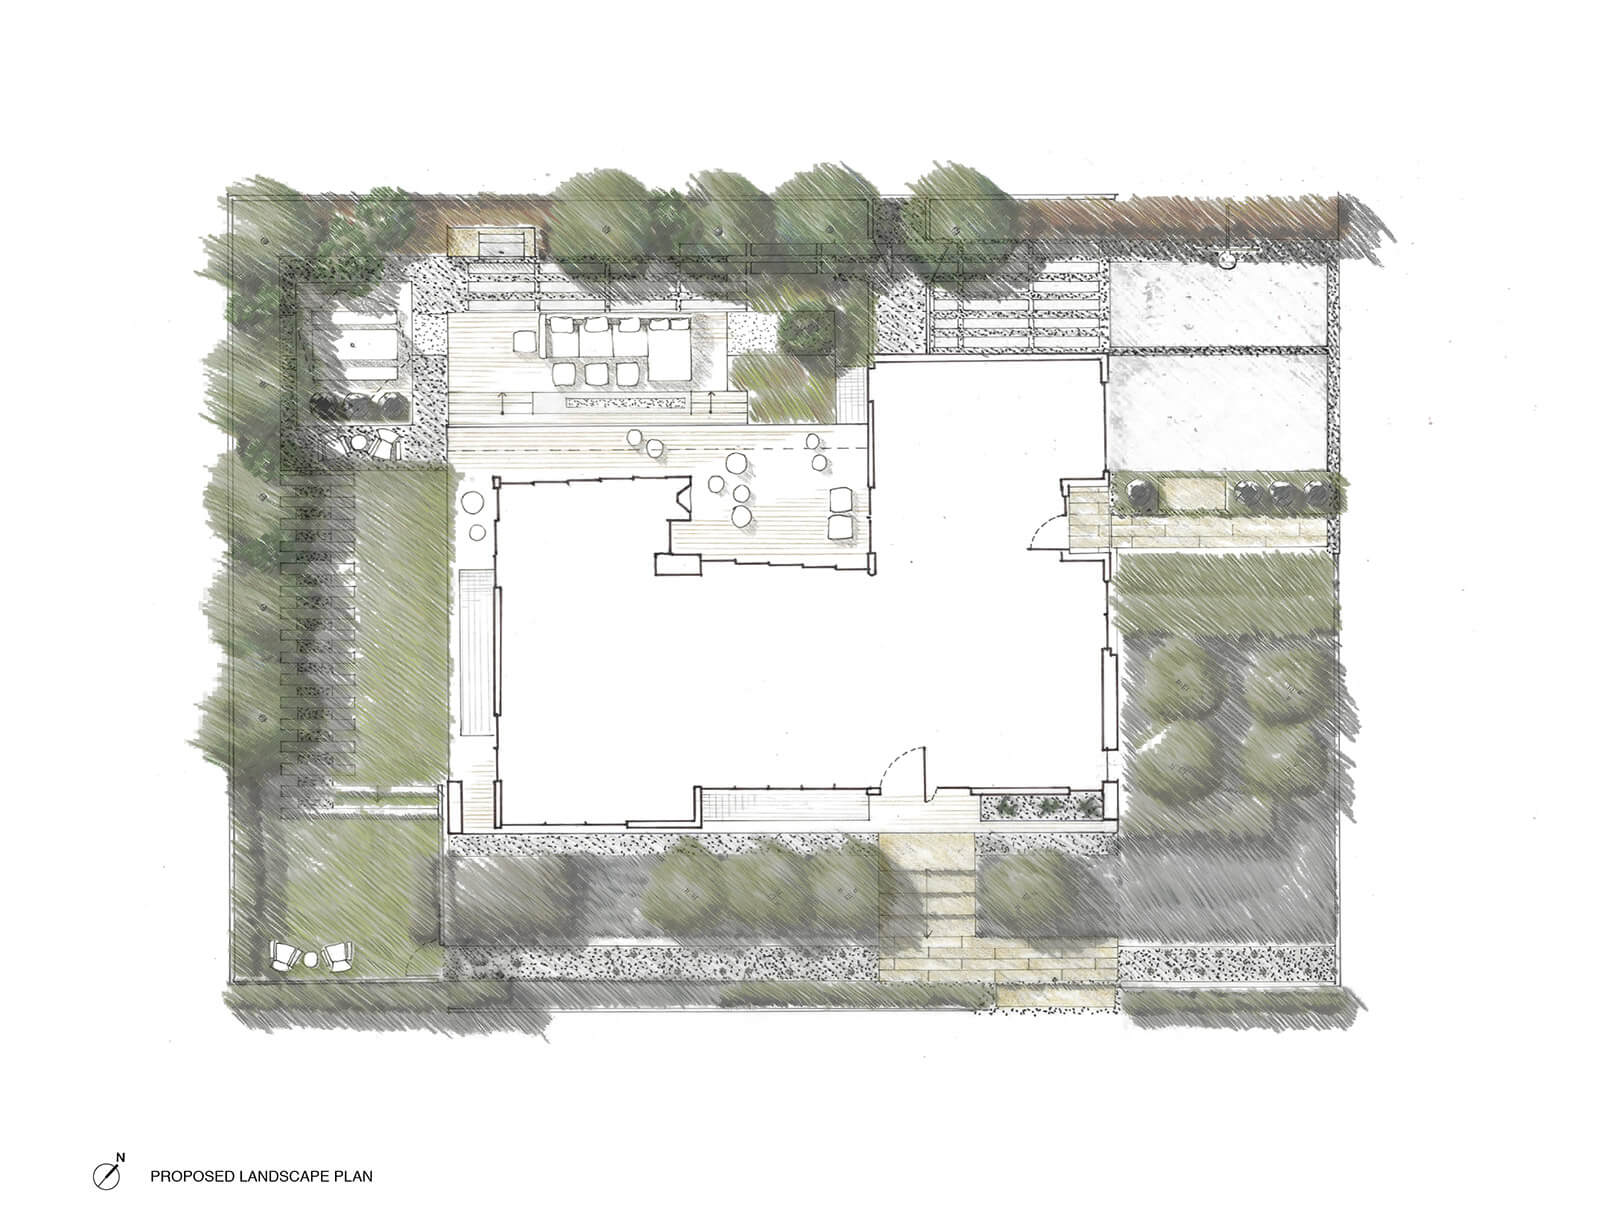 studio vara residential palo alto drawings site plan